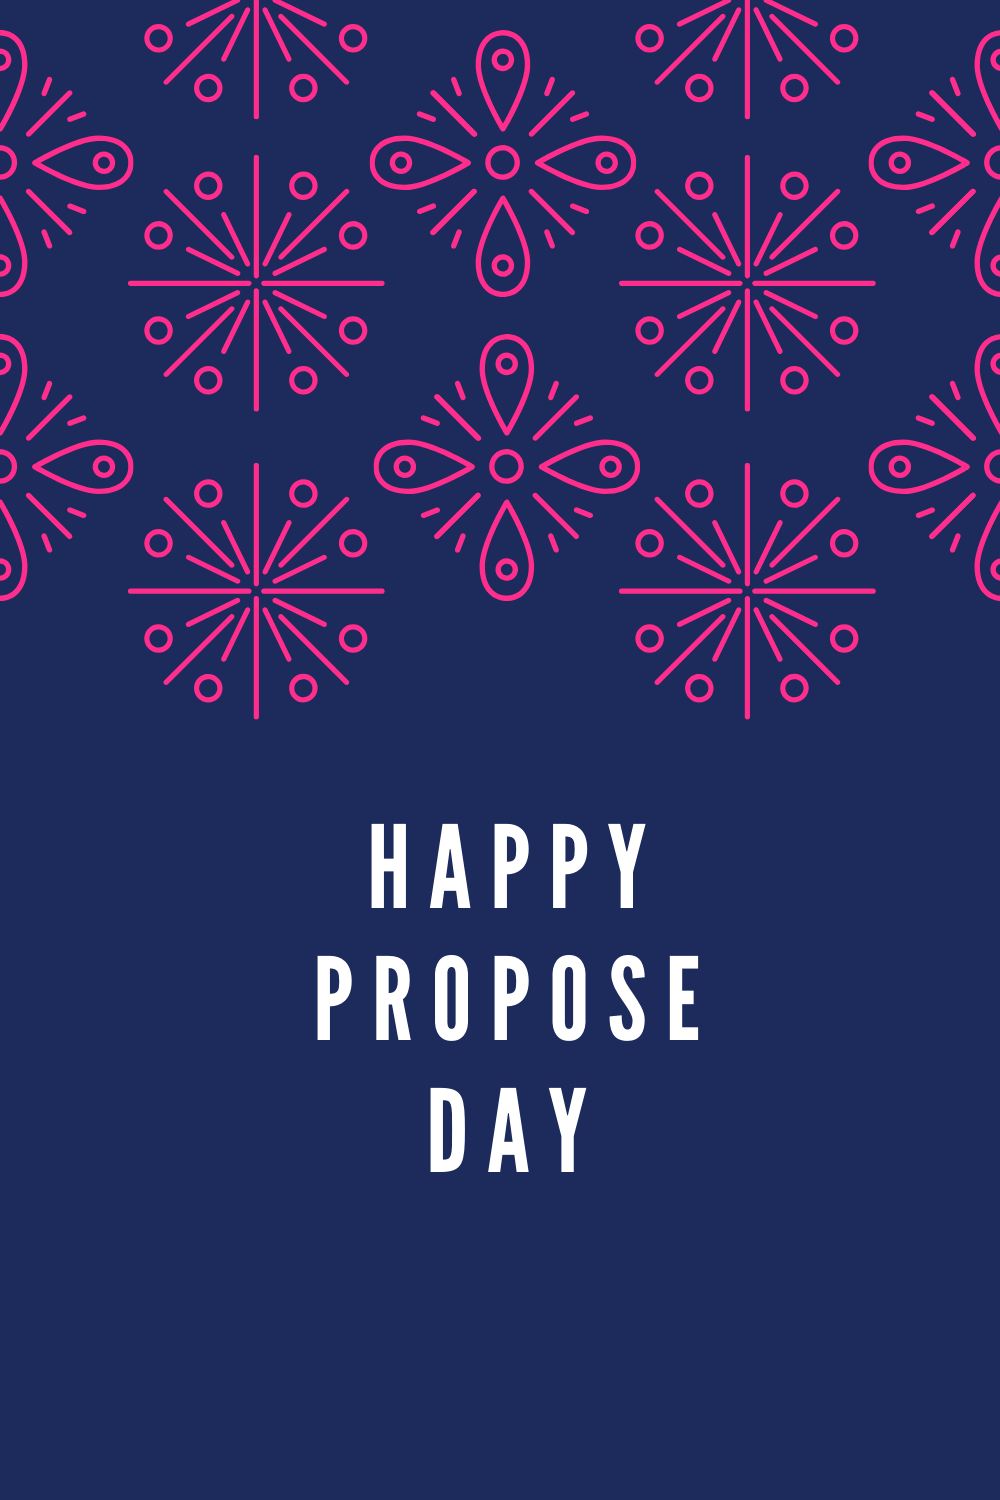 happy propose day wishes | Images, videos, GIF